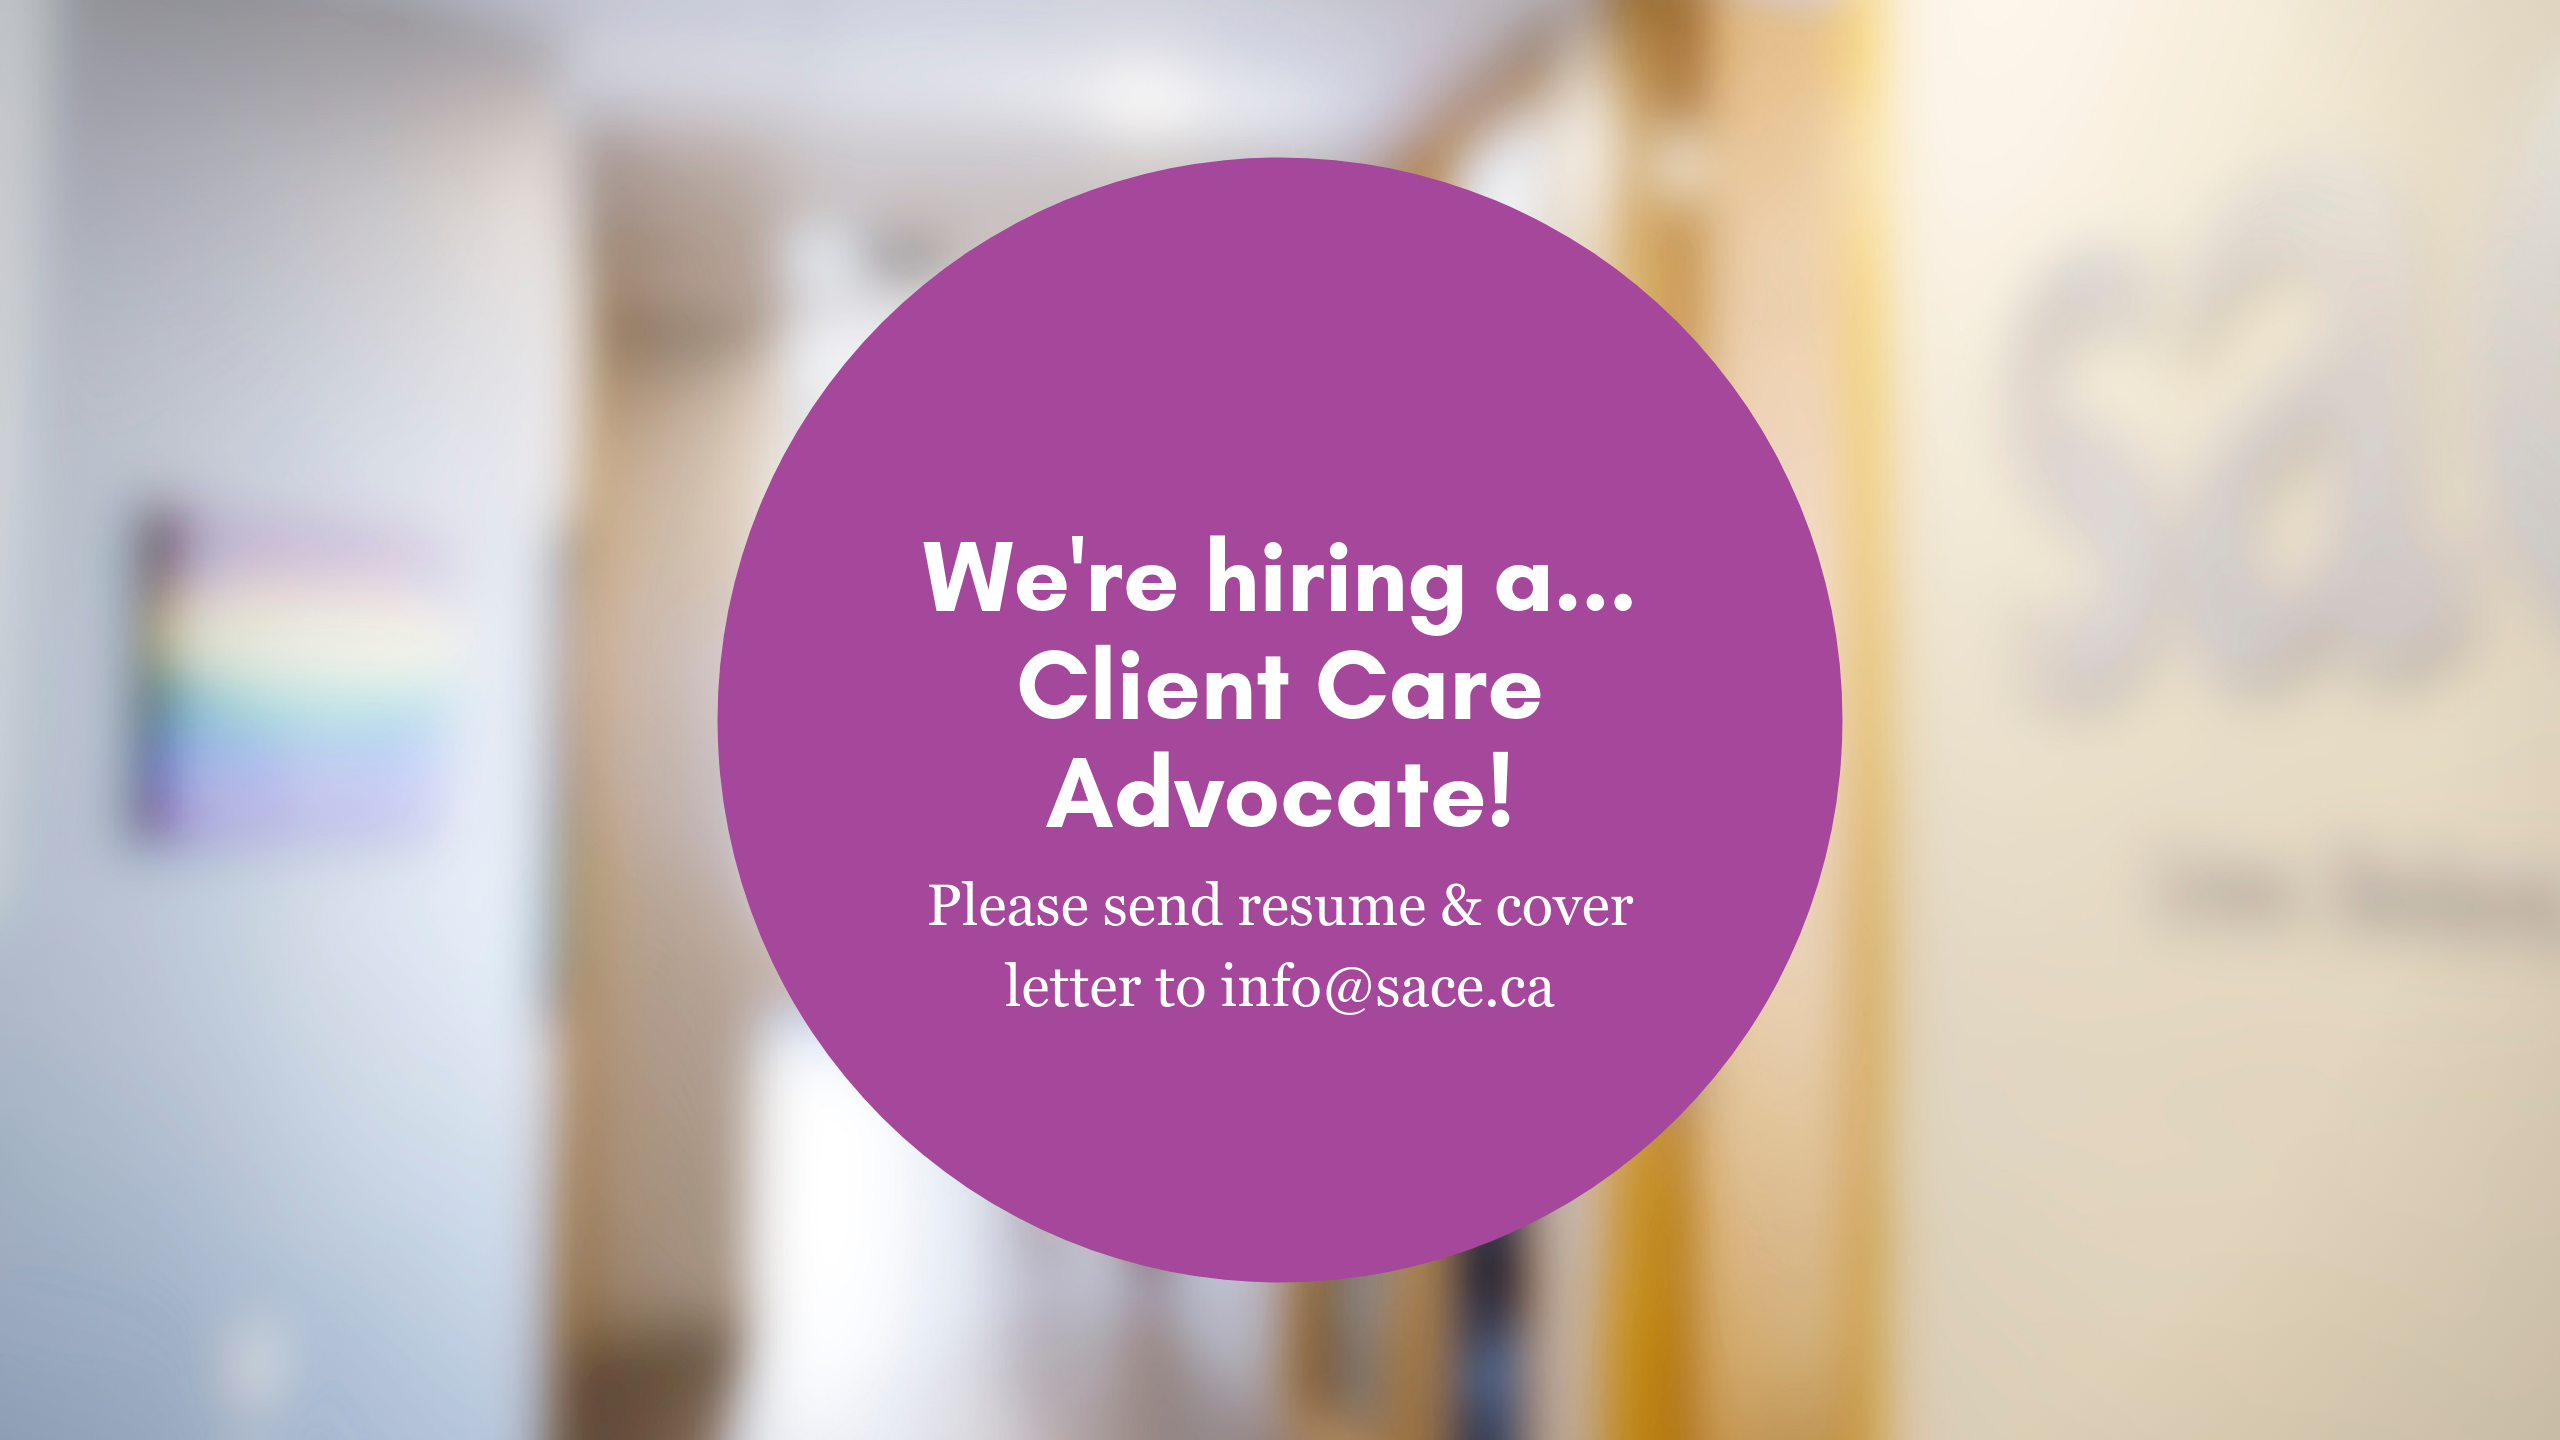 We're Hiring A Client Care Advocate! Please Send Resume And Cover Letter To Info@sace.ca